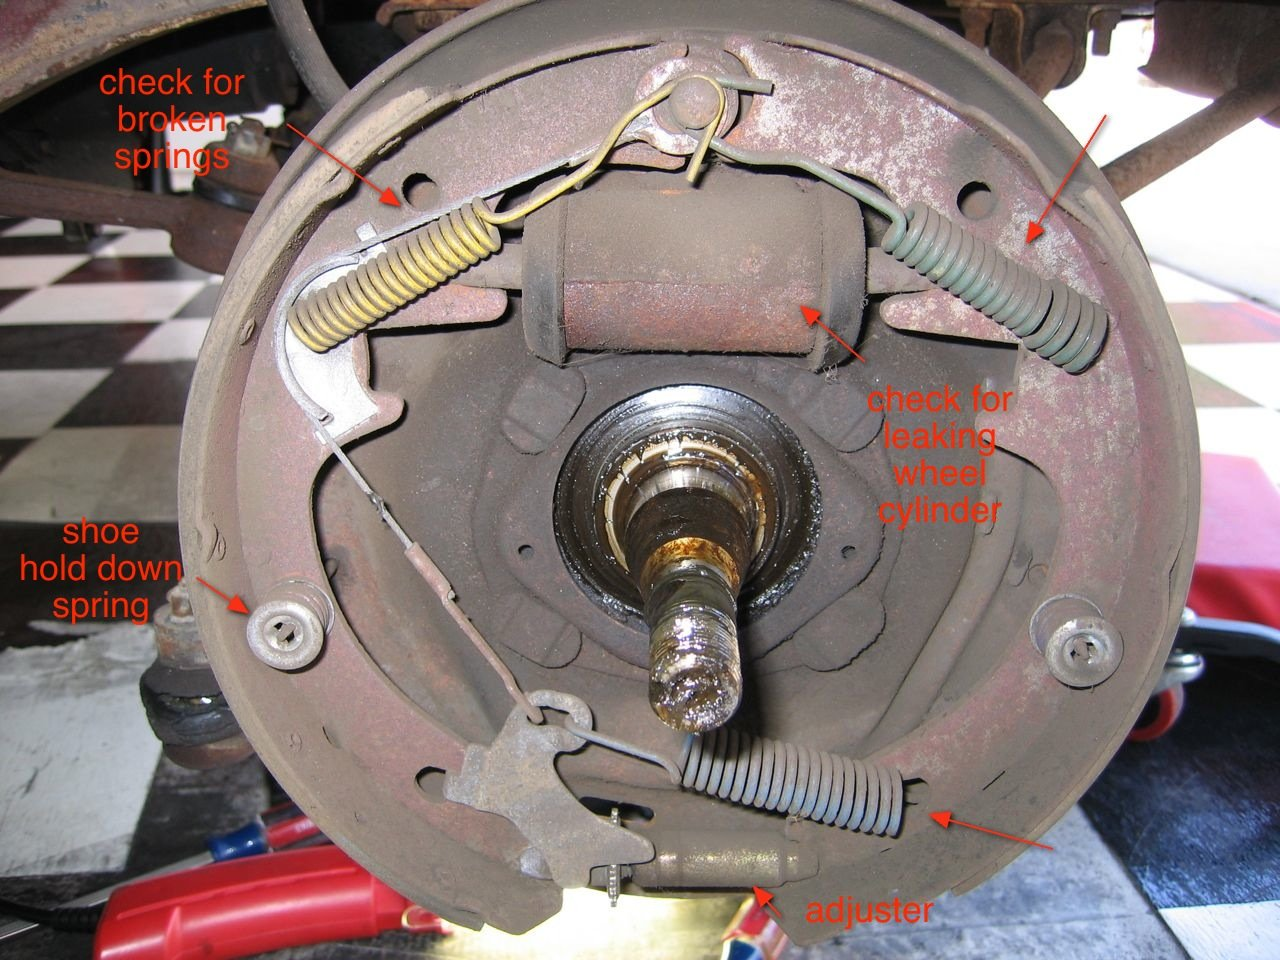 2000 ford ranger rear brake diagram toyota hilux stereo wiring 2008 1966 mustang-step hard on brakes = pull to left - mustang forum